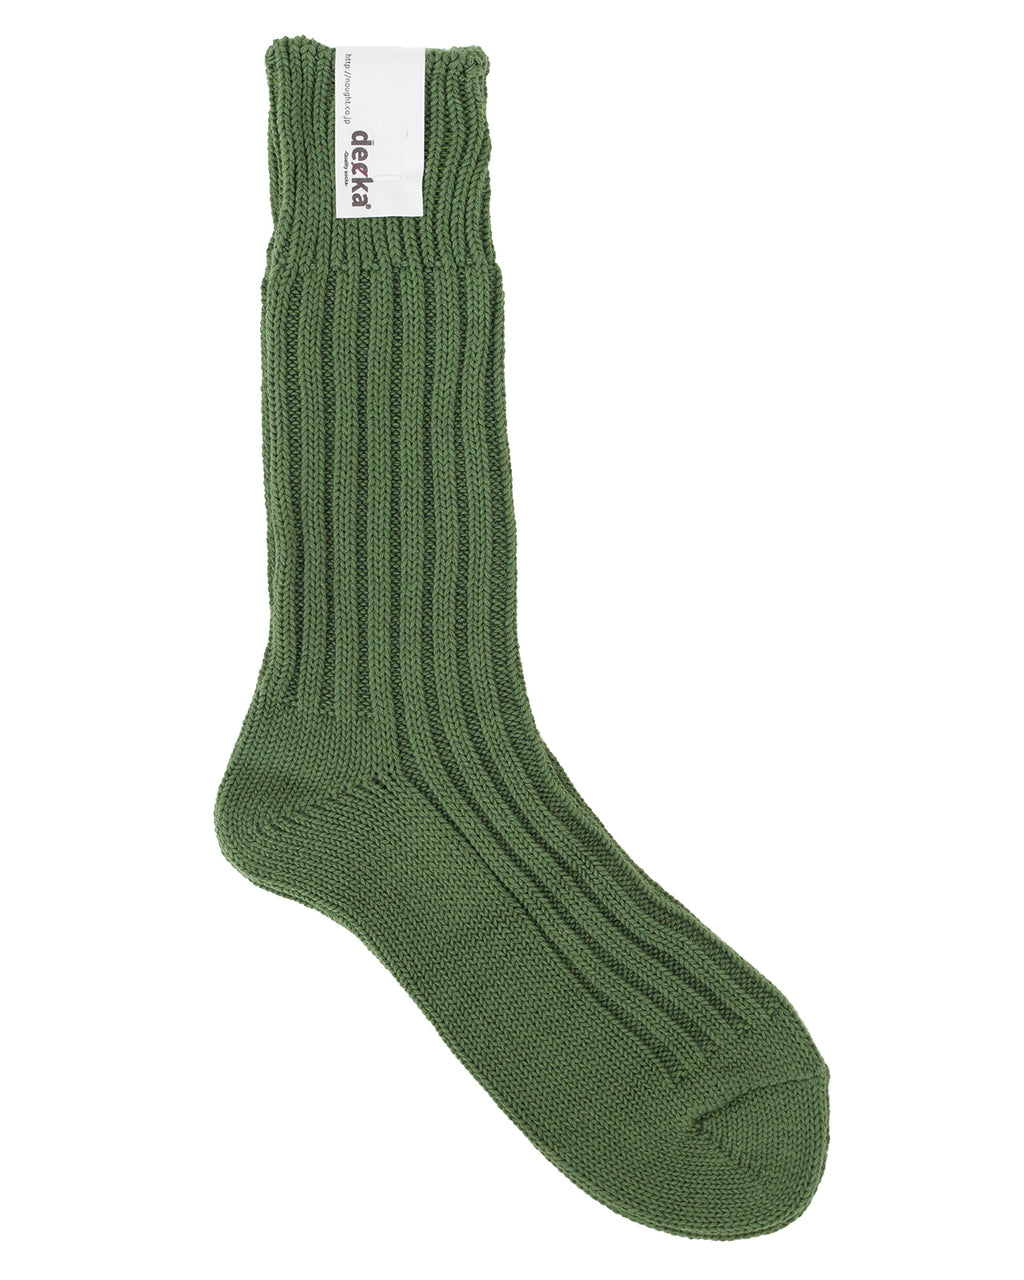 Decka Cased Heavy Weight Plain Socks, Green